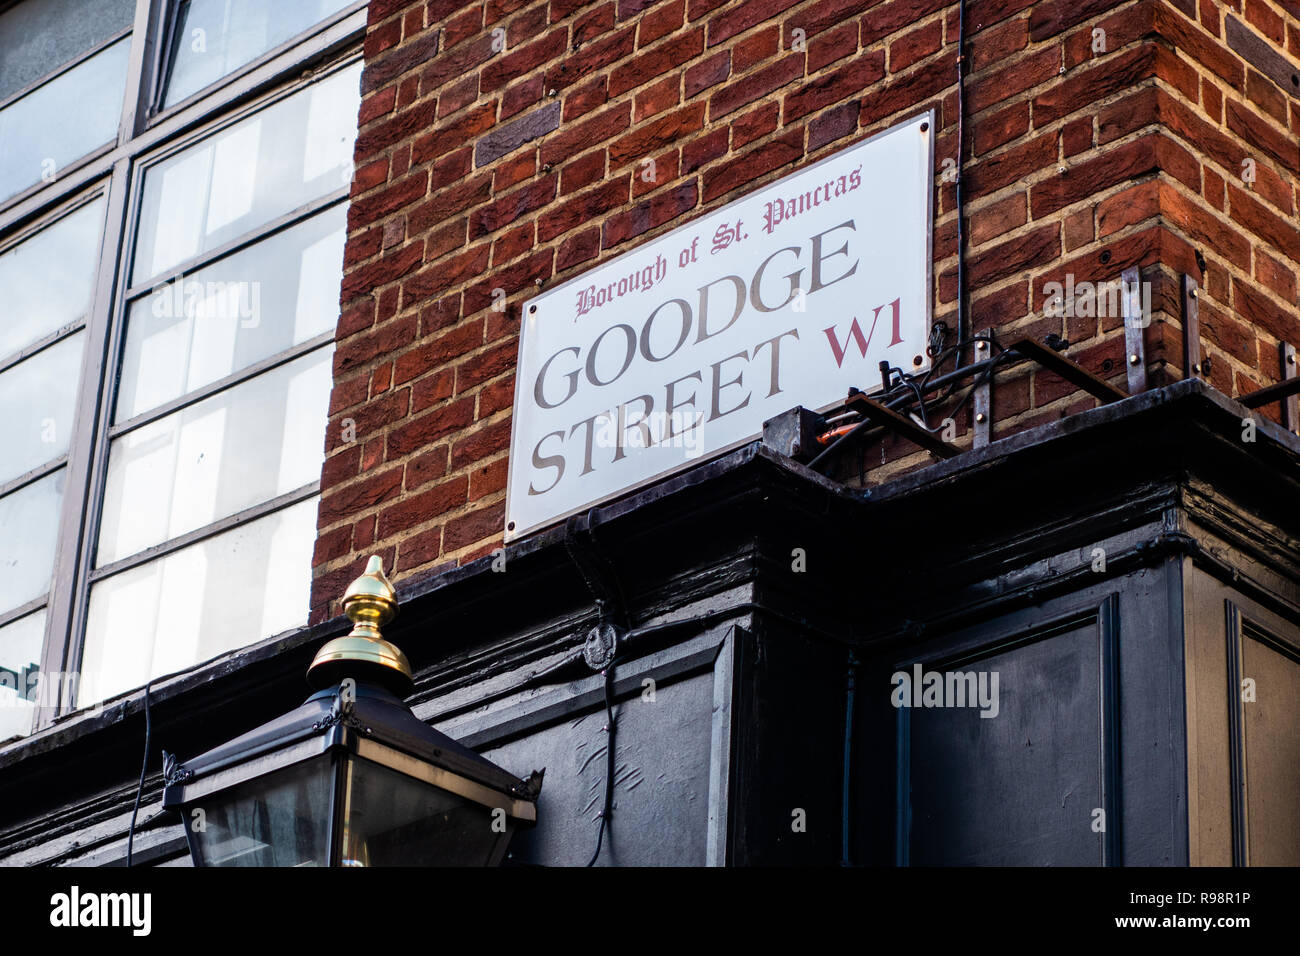 Looking at the corner of a brick building showing a Goodge Street road name sign high up on a brick wall in London - Stock Image